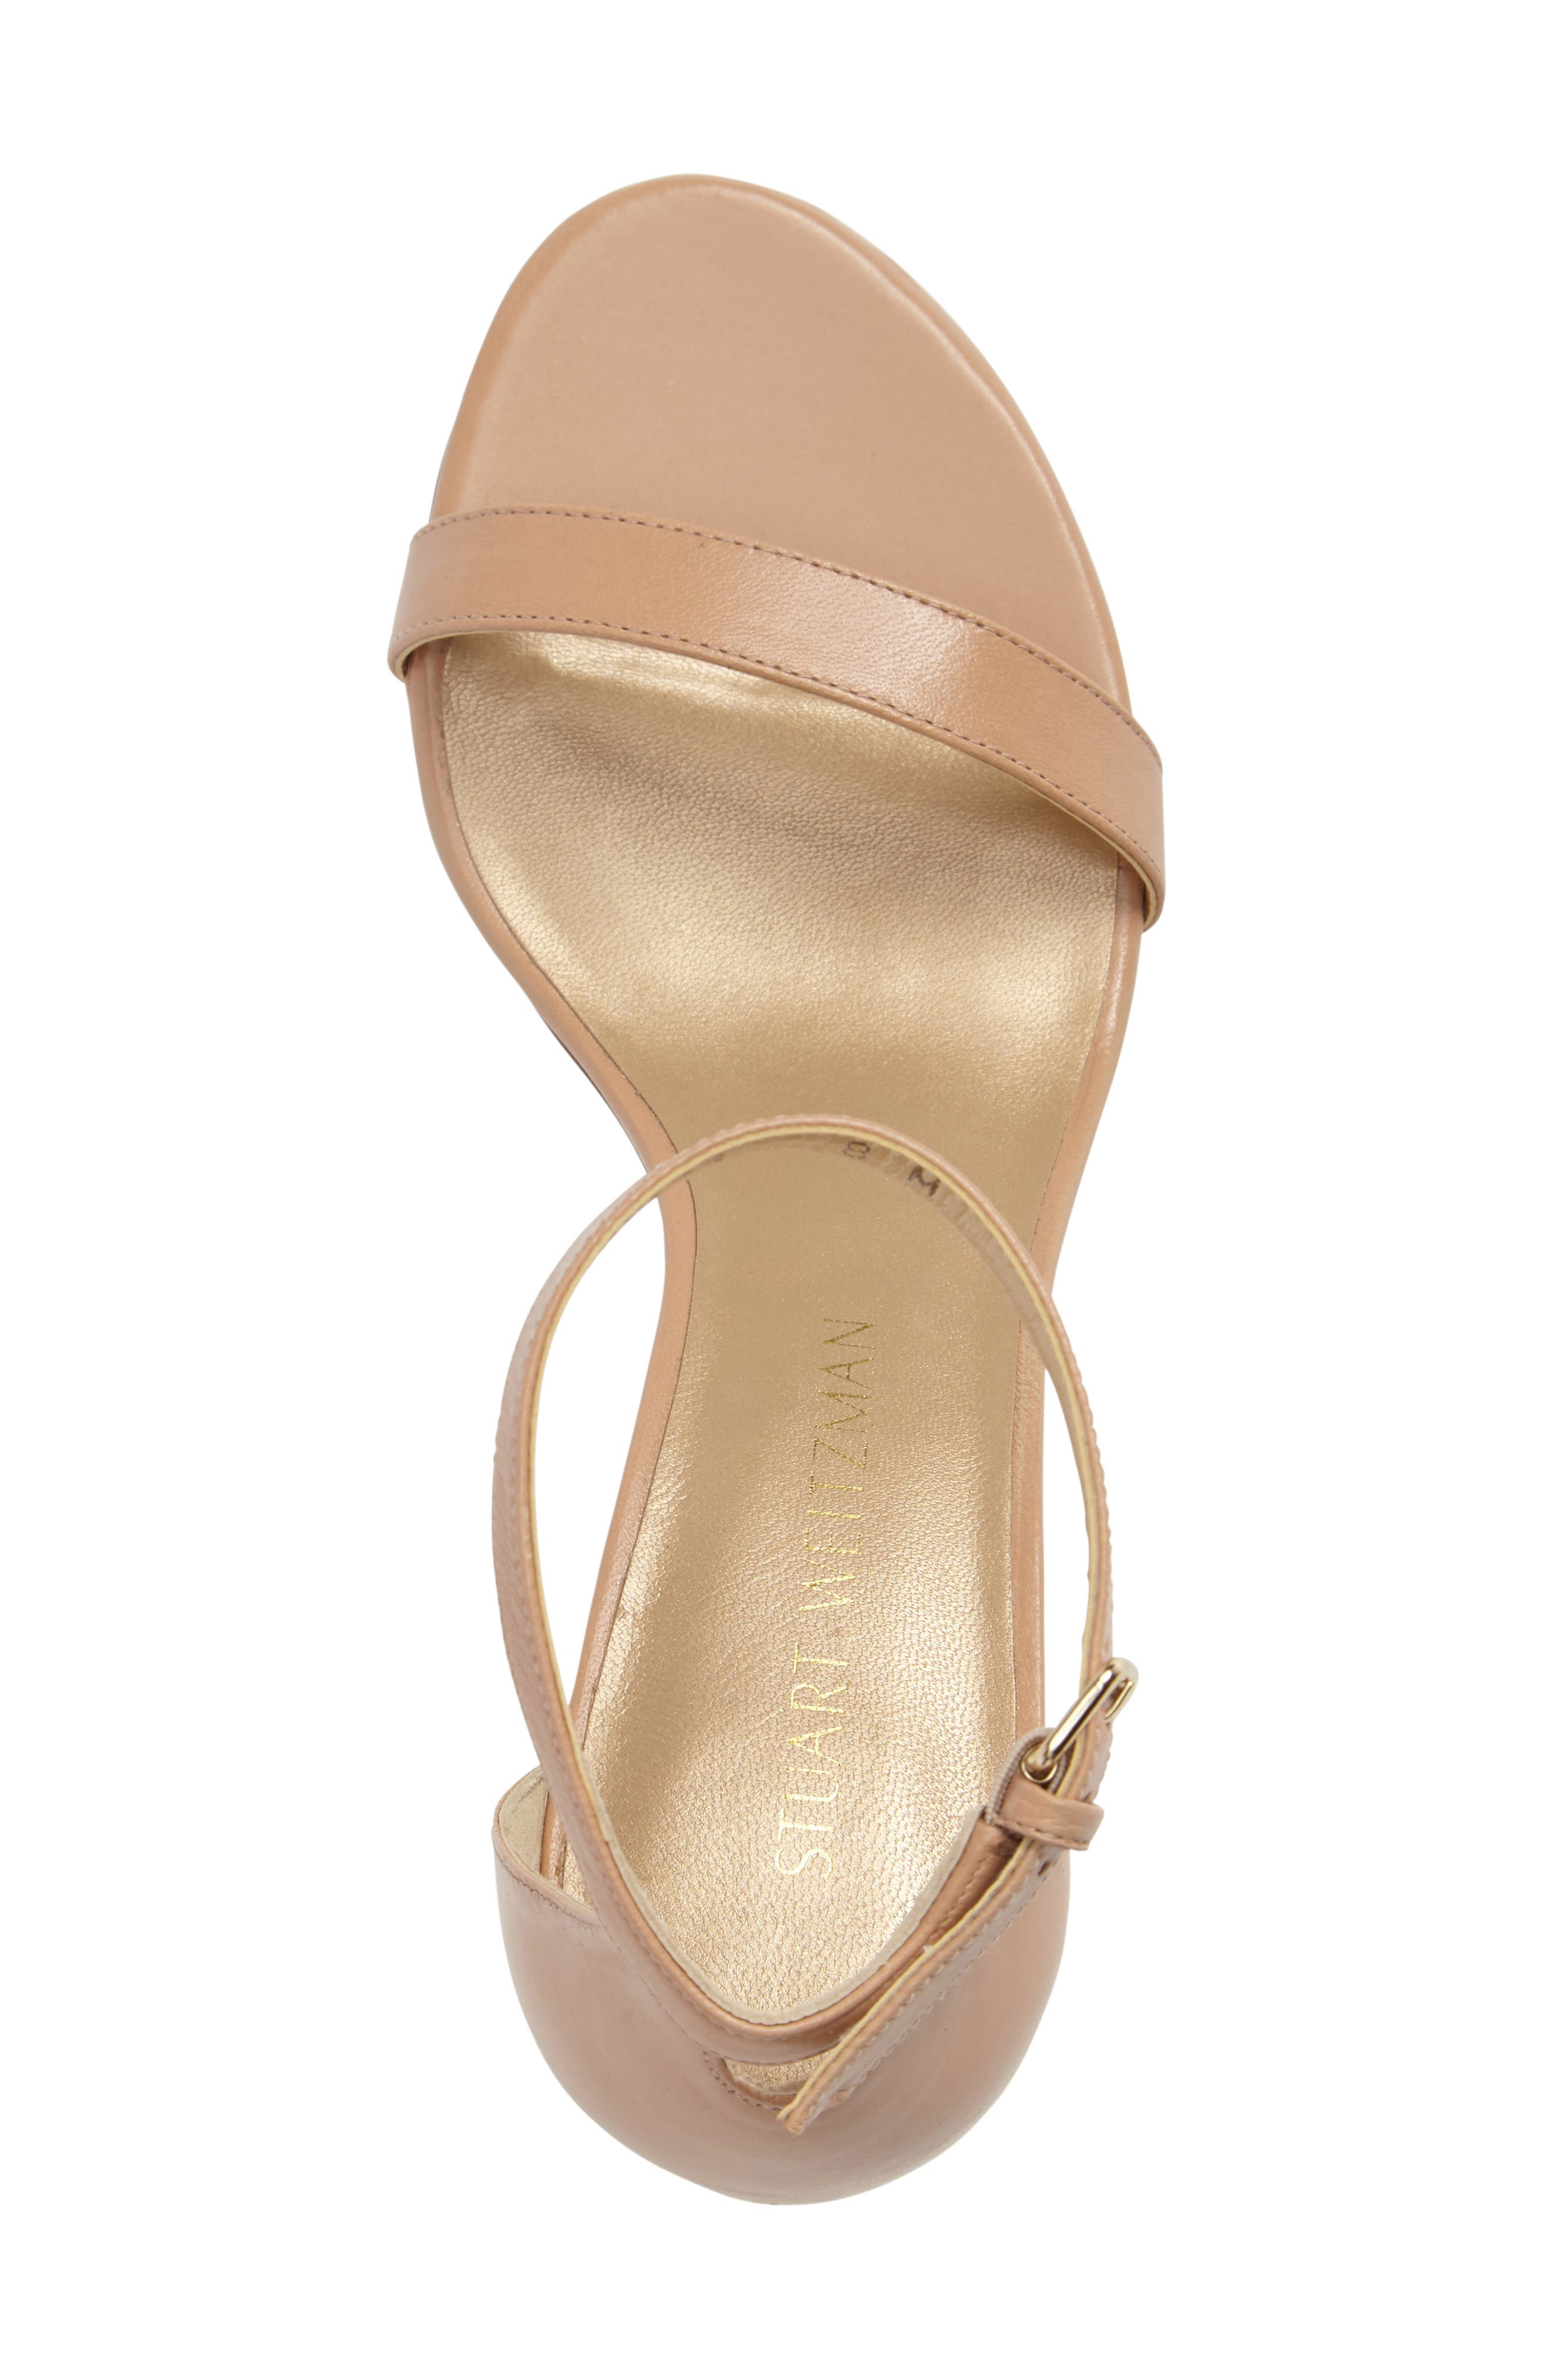 NearlyNude Ankle Strap Sandal,                             Alternate thumbnail 74, color,